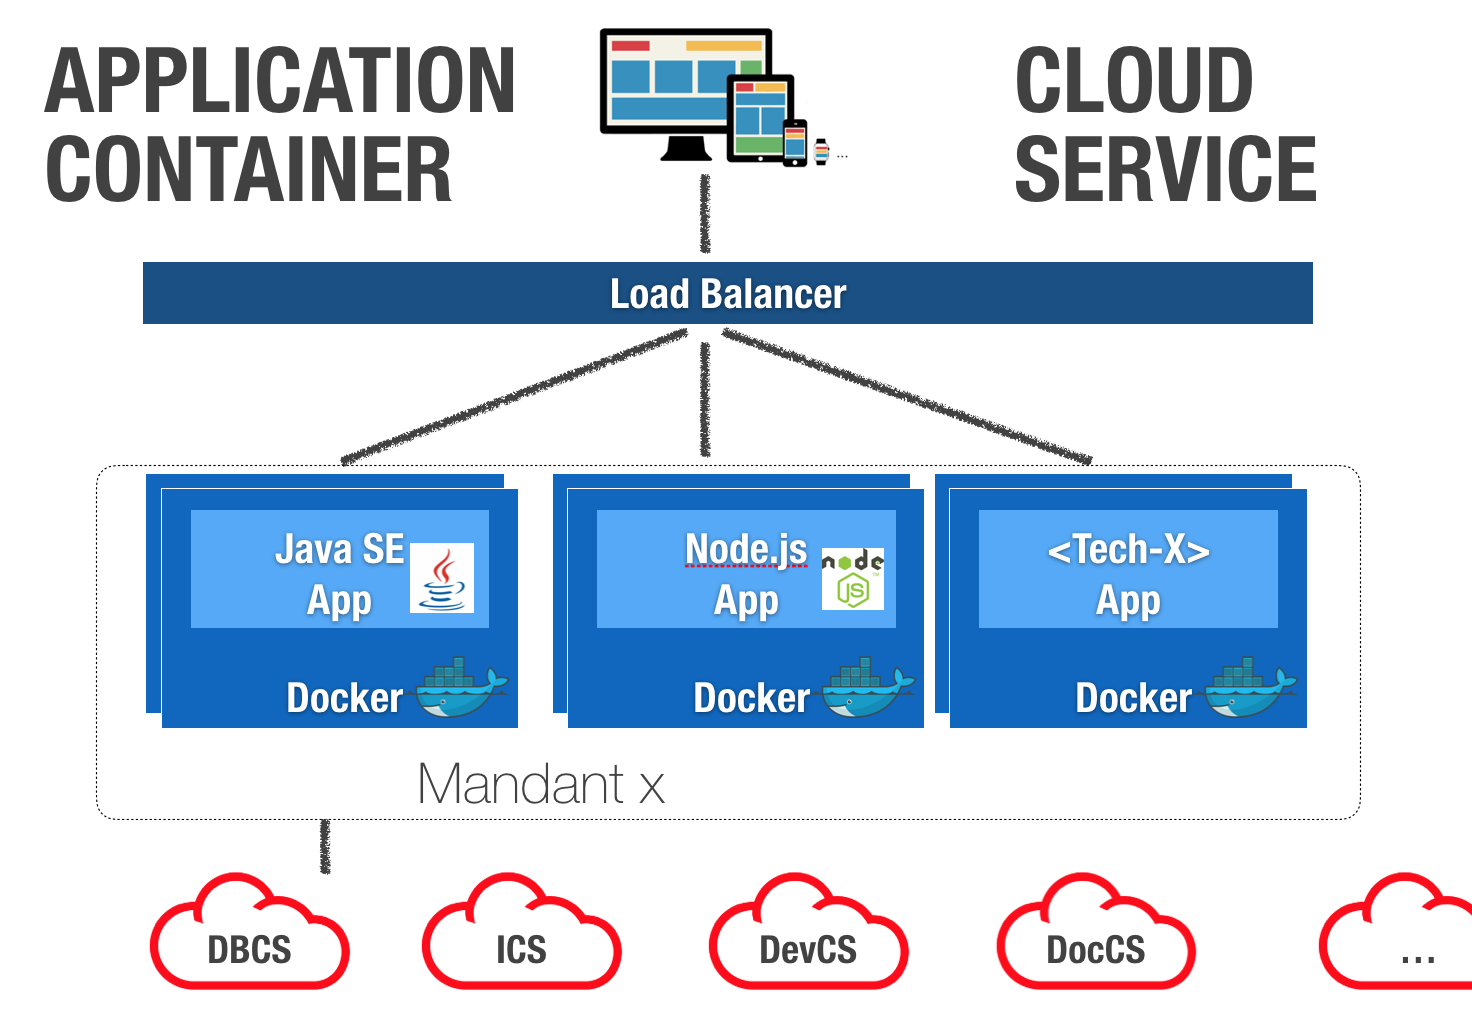 Practical experience on Oracle products: Running Node.JS Apps and